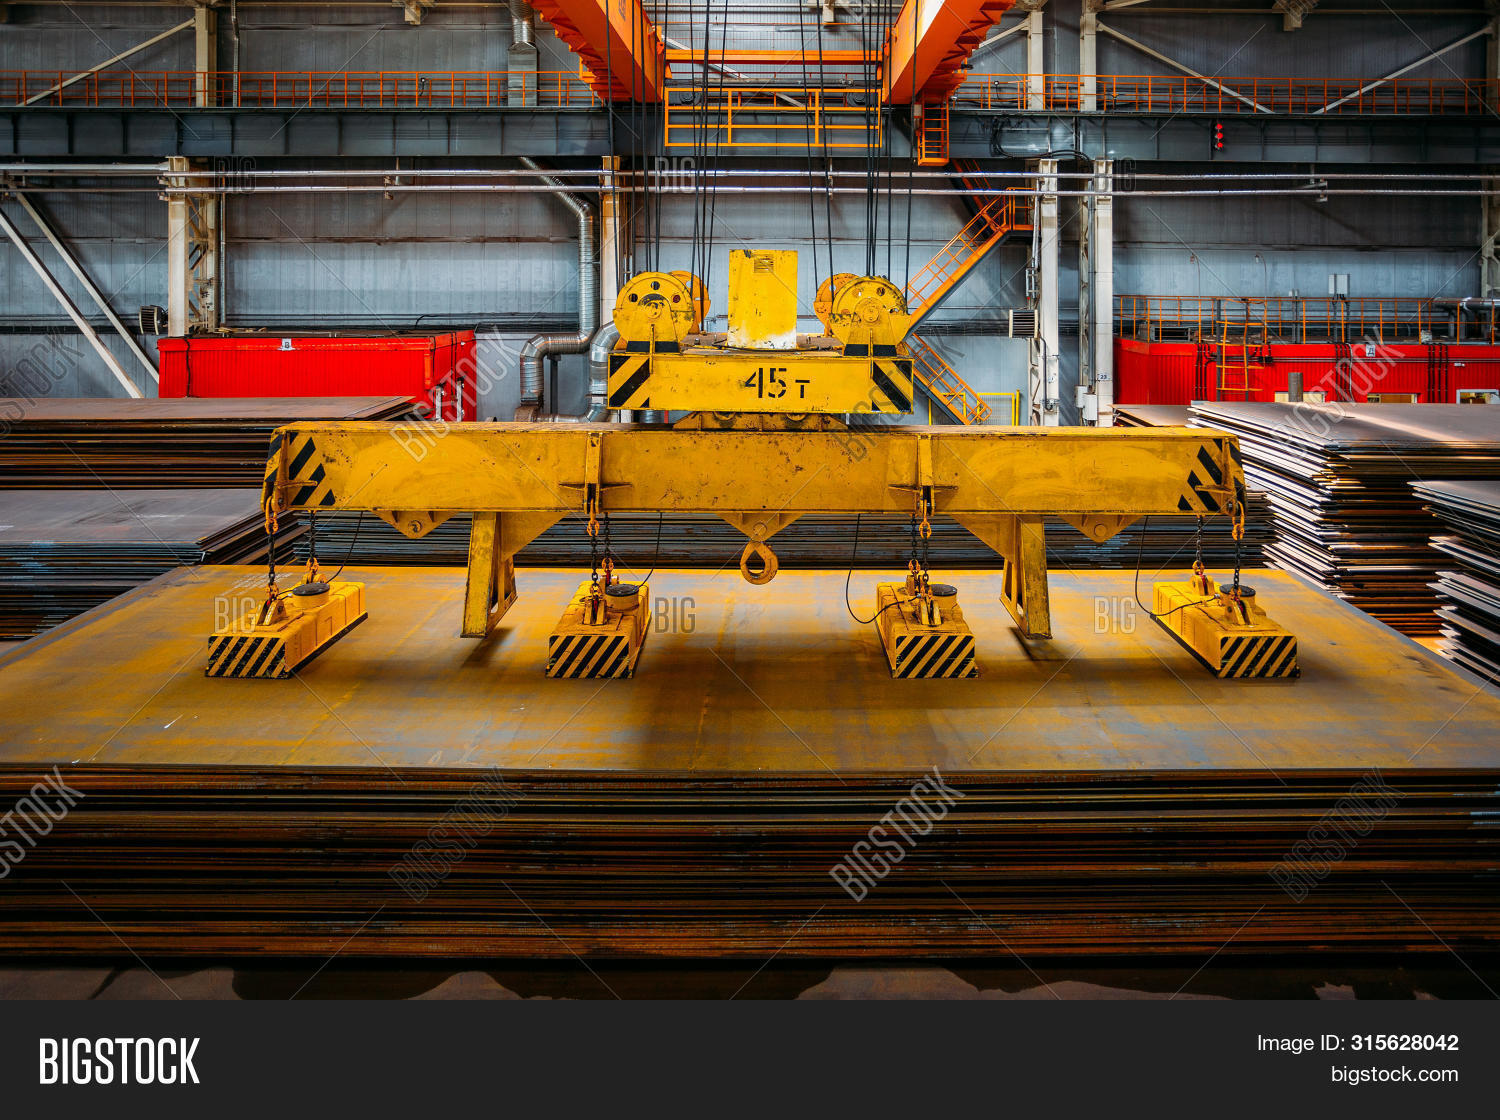 Overhead Crane With Electromagnetic Beam Grippers Lifting Steel Sheets.